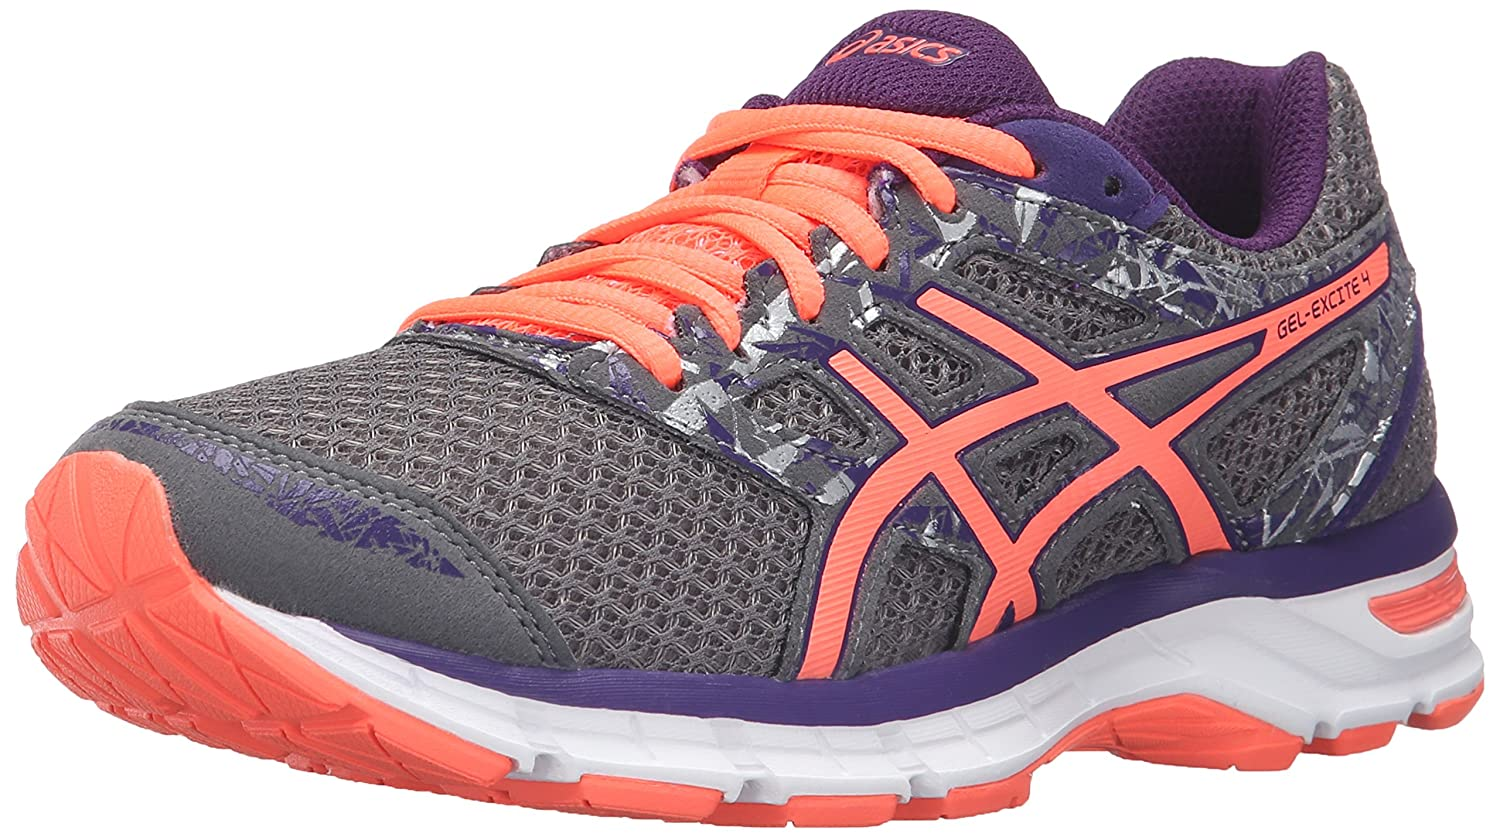 ASICS Women's Gel-Excite 4 Running Shoe B017USLQMU 6 B(M) US|Shark/Flash Coral/Parachute Purple